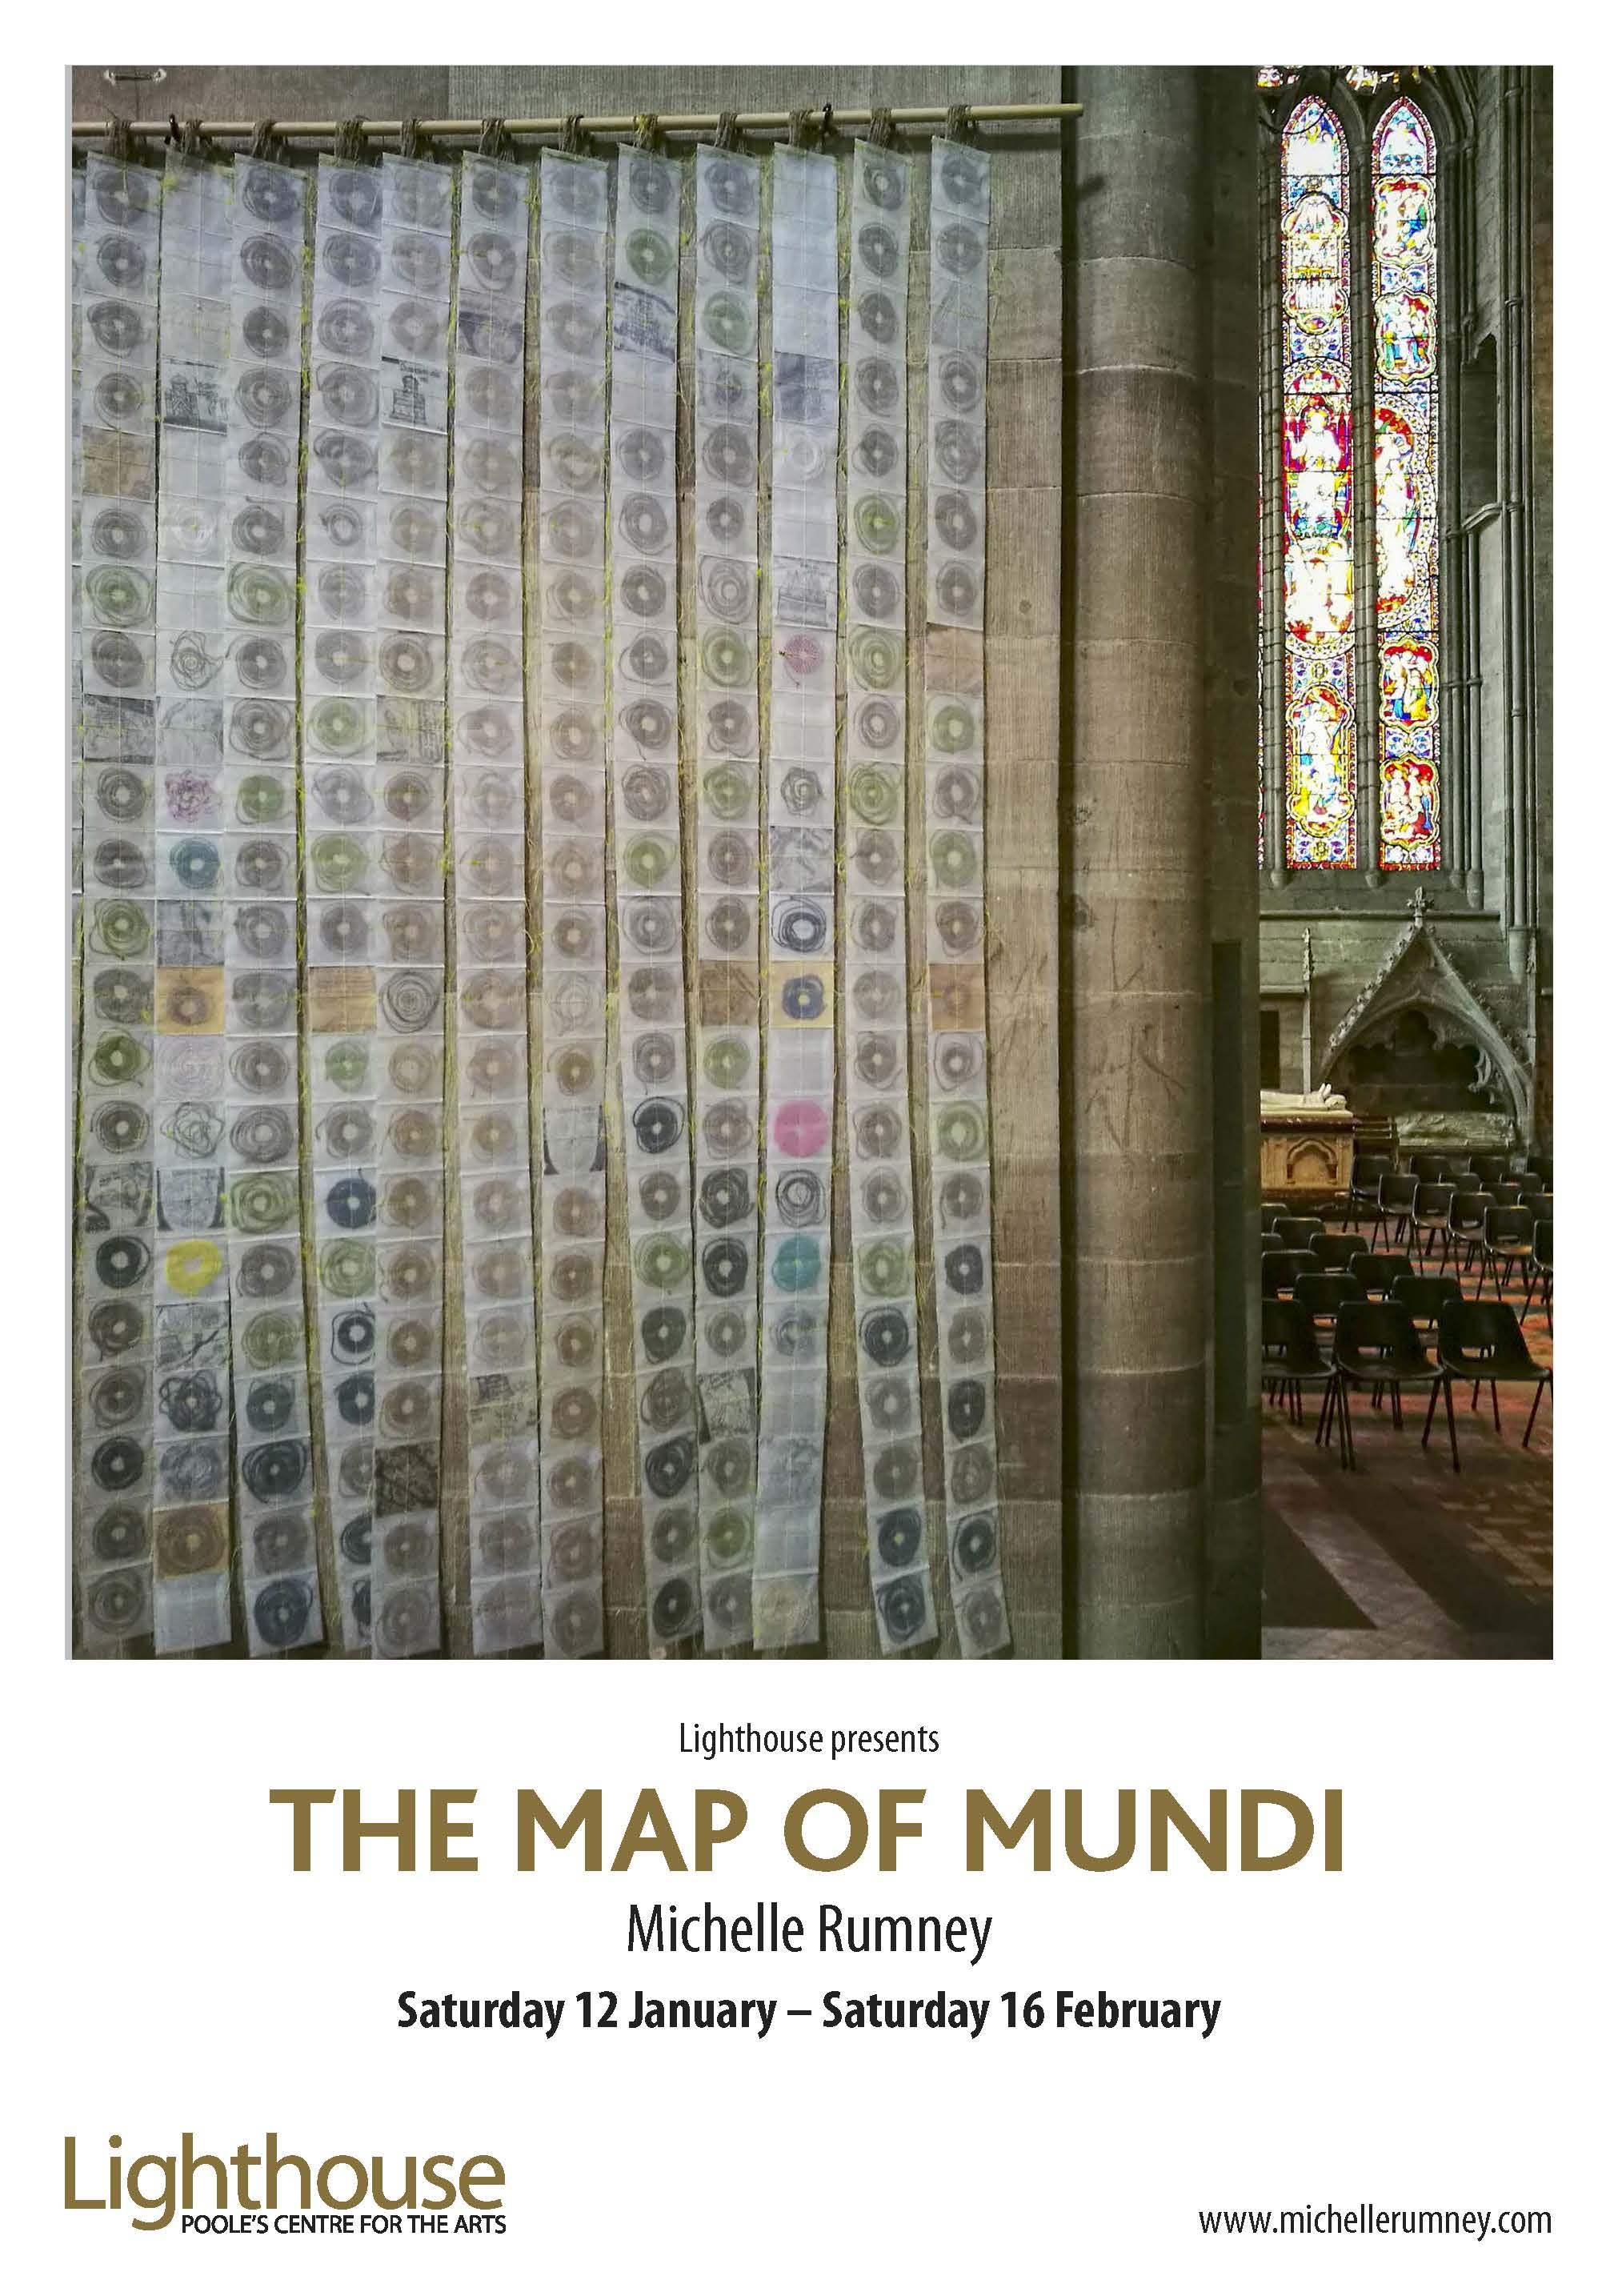 The Map of Mundi exhibition at Lighthouse Poole's Centre for the Arts showing artwork in Hereford Cathedral